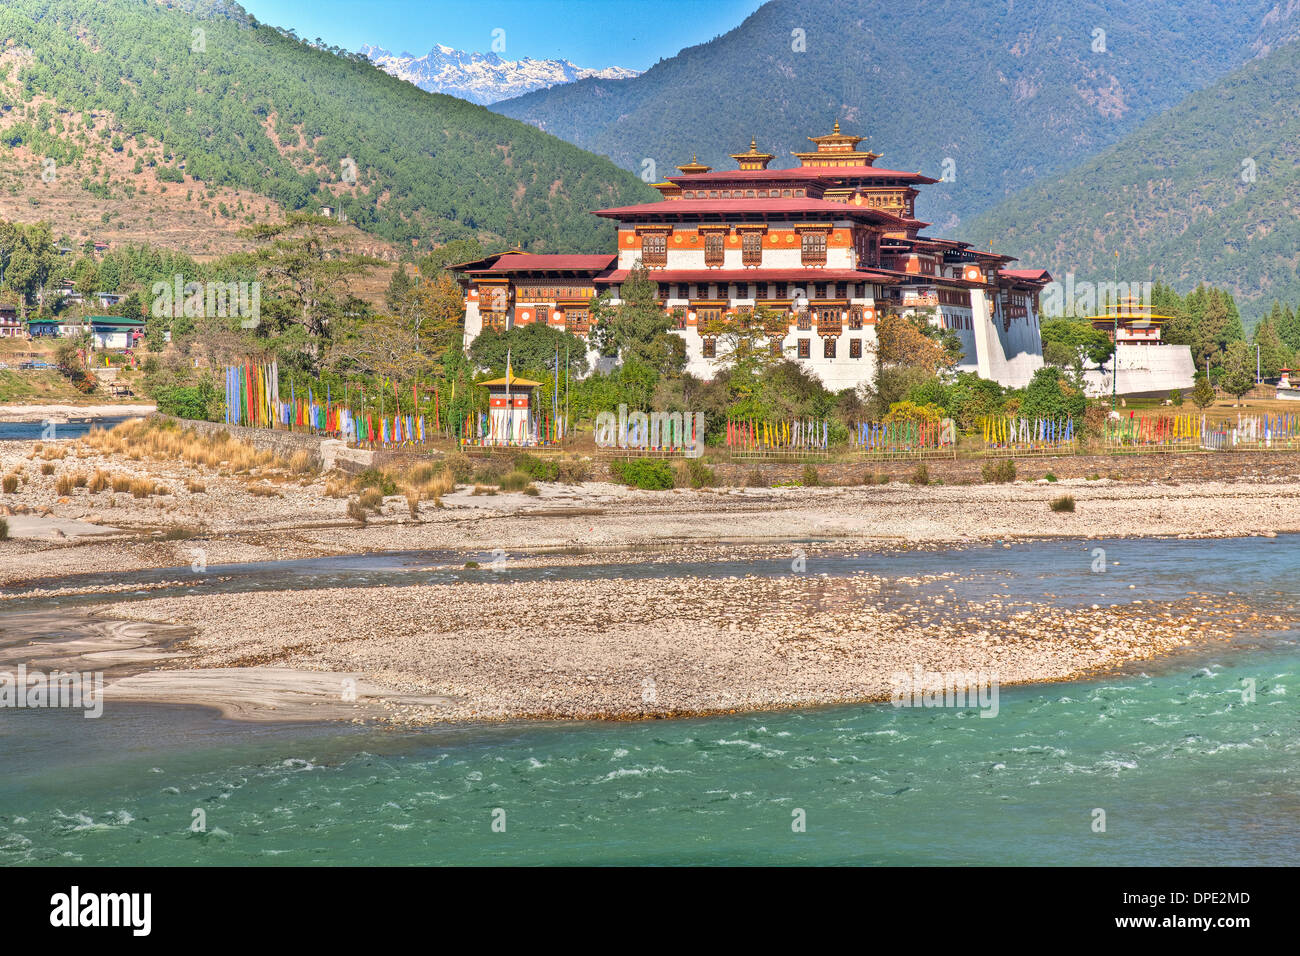 Punakha Dzong Monastery Bhutan Himalayan Mountains Built originally in 1300s Sacred site for Bhutanese people on Phochu & Mochu - Stock Image